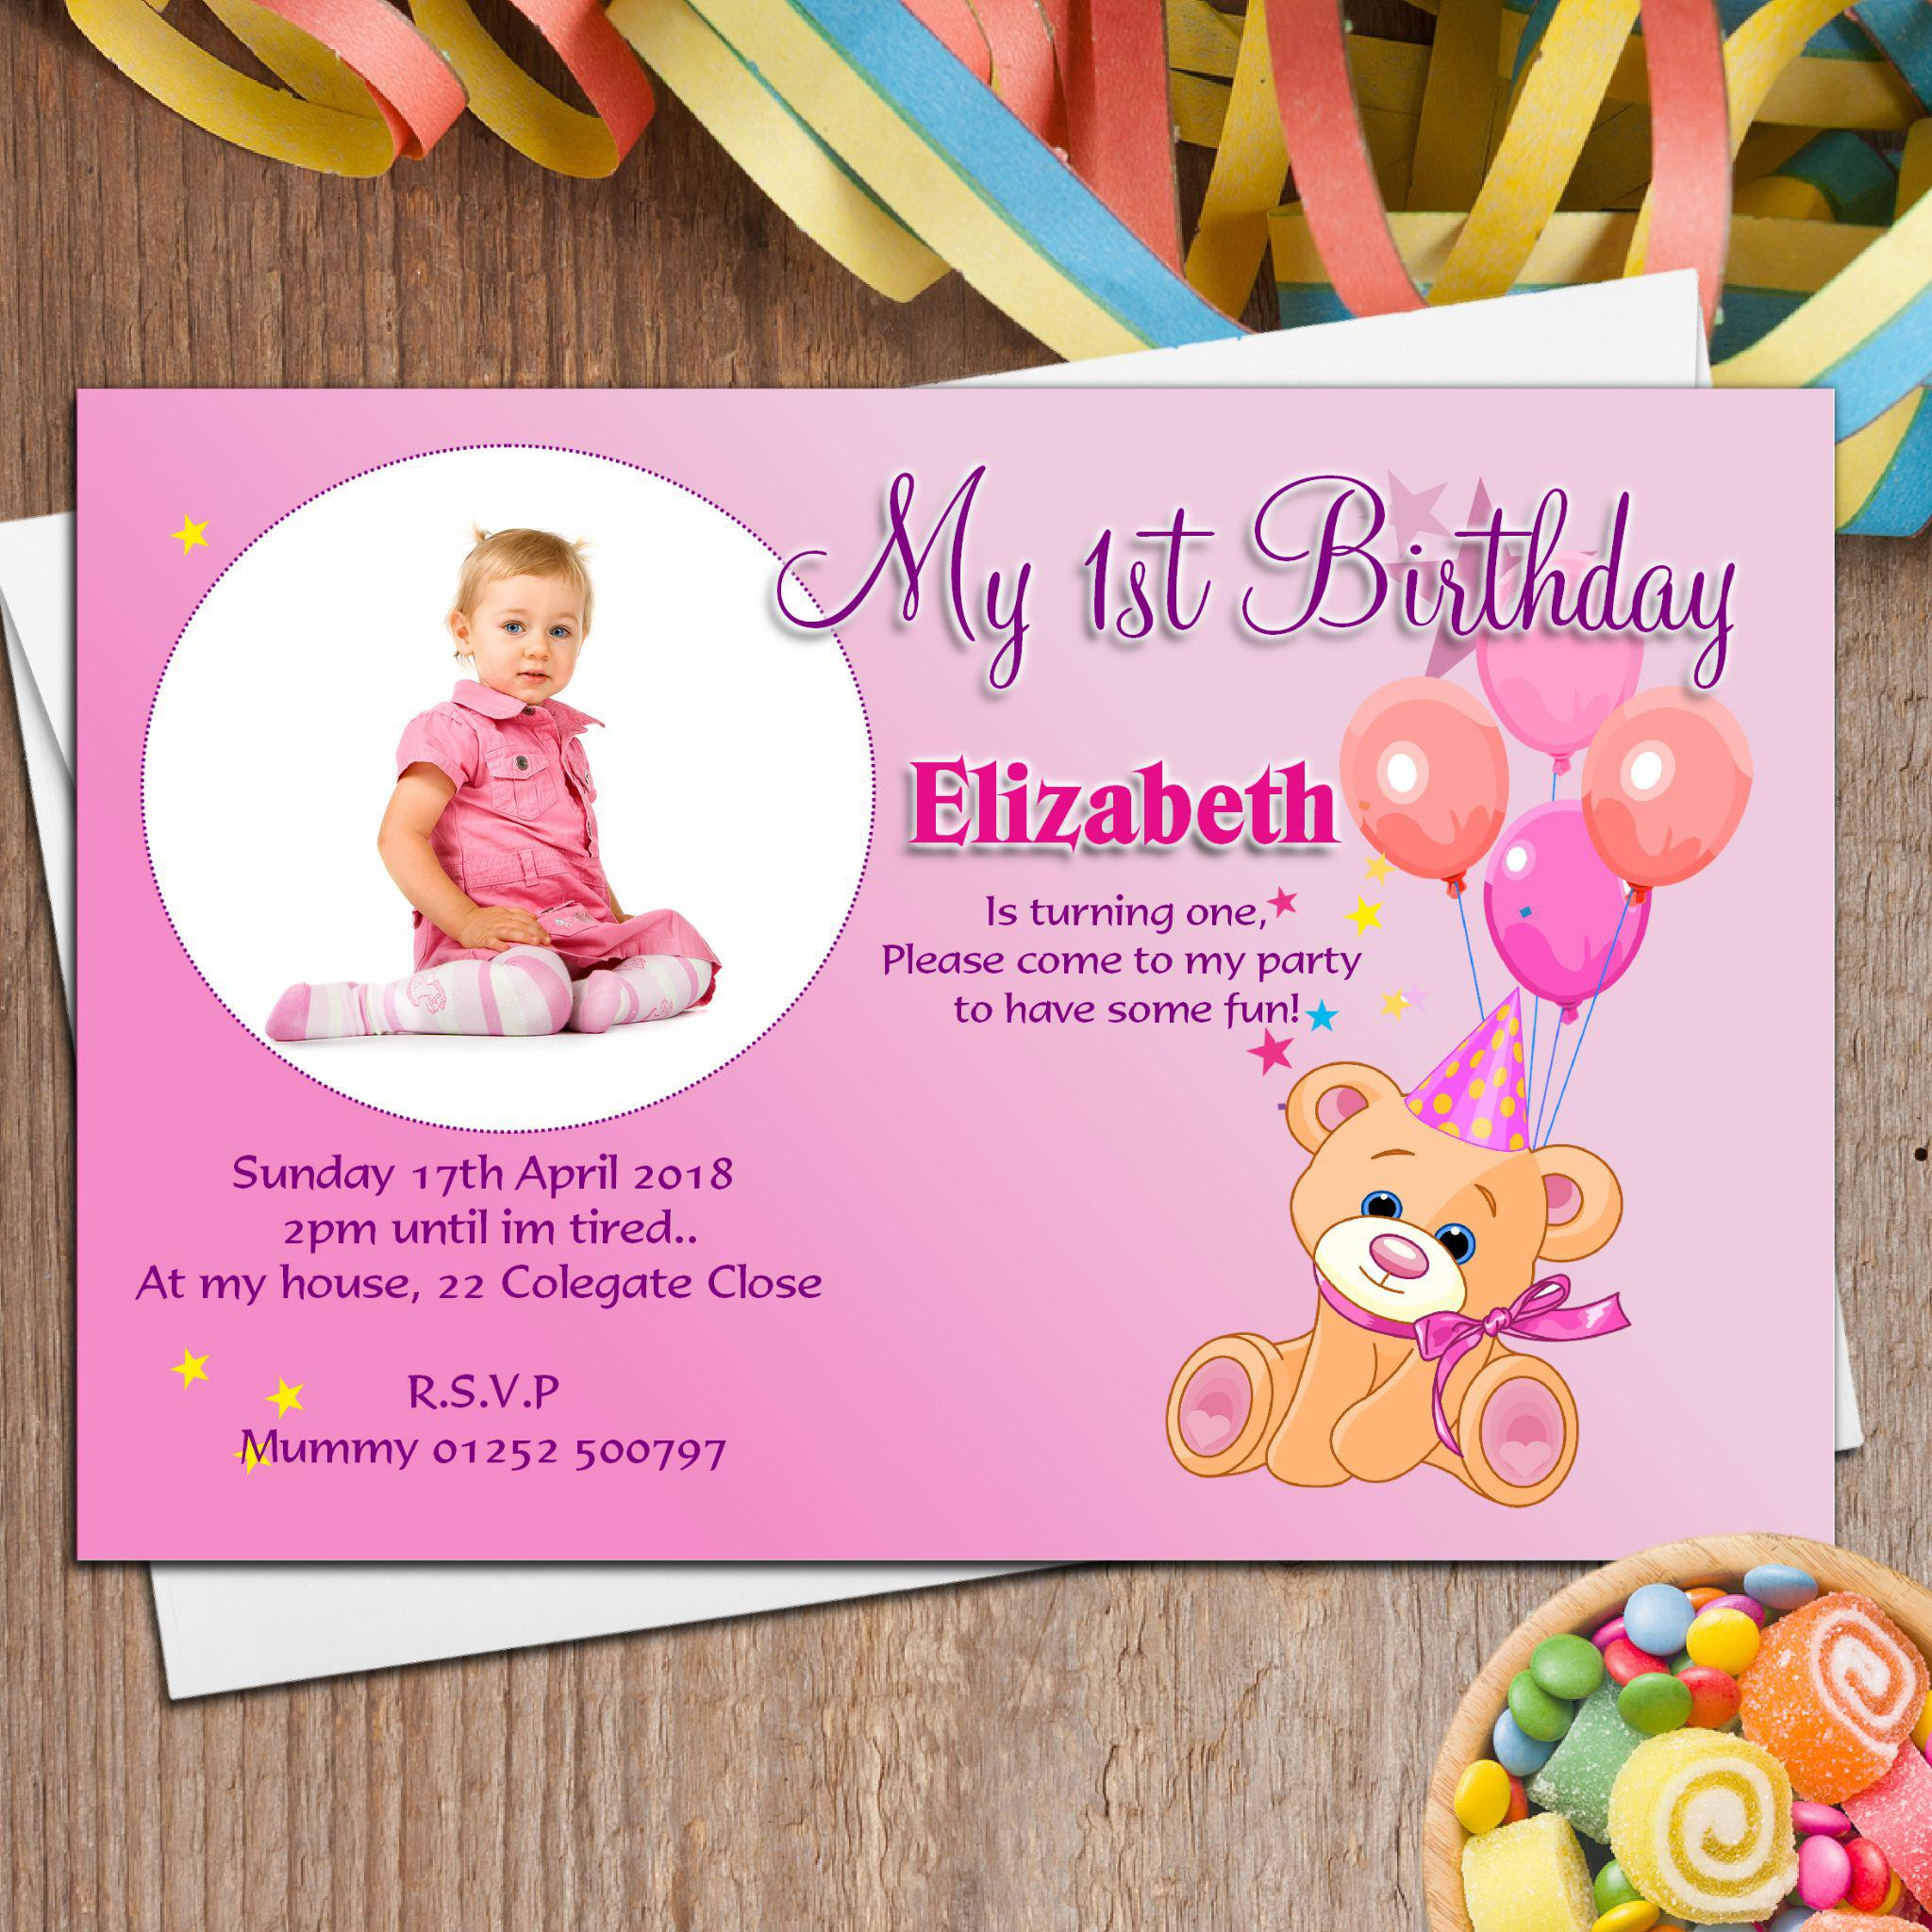 20 Birthday Invitations Cards Sample Wording Printable – Sample Party Invitation Card